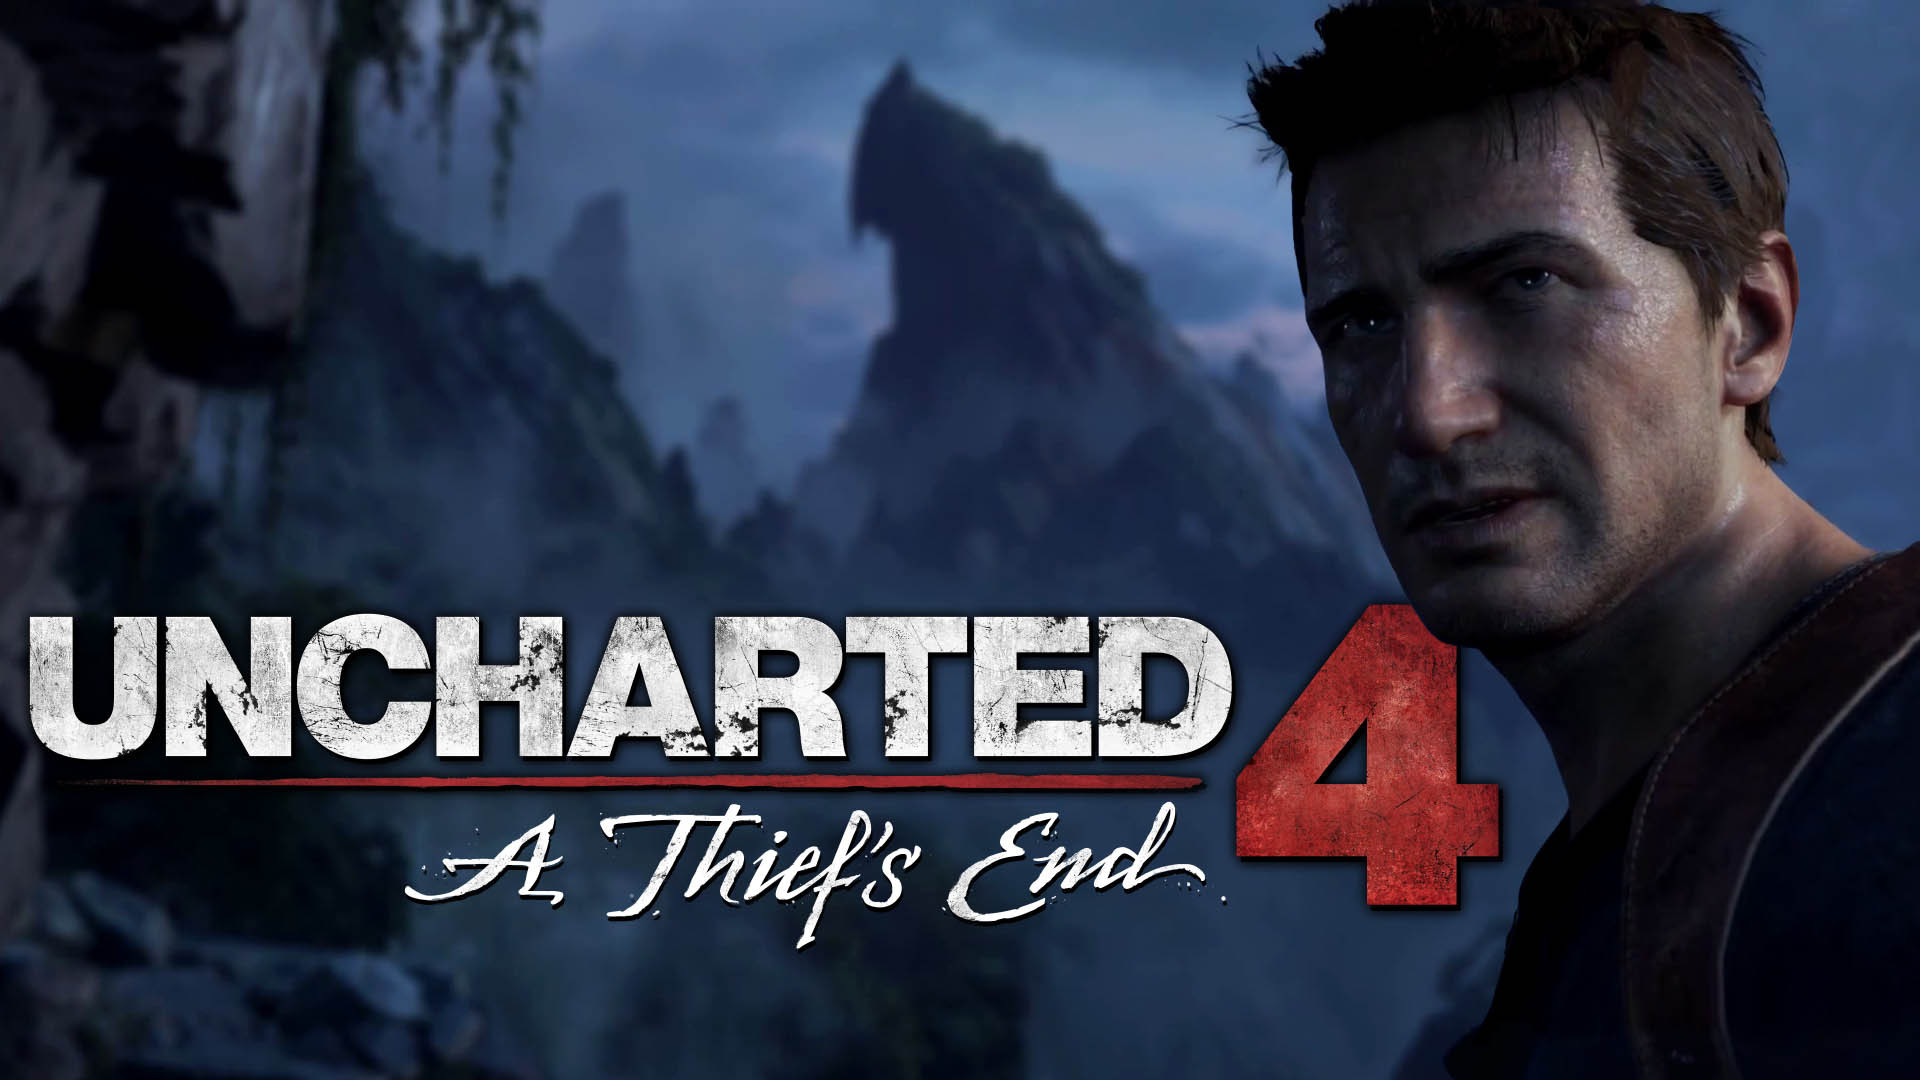 Uncharted 4 A Thief's End Computer Wallpaper